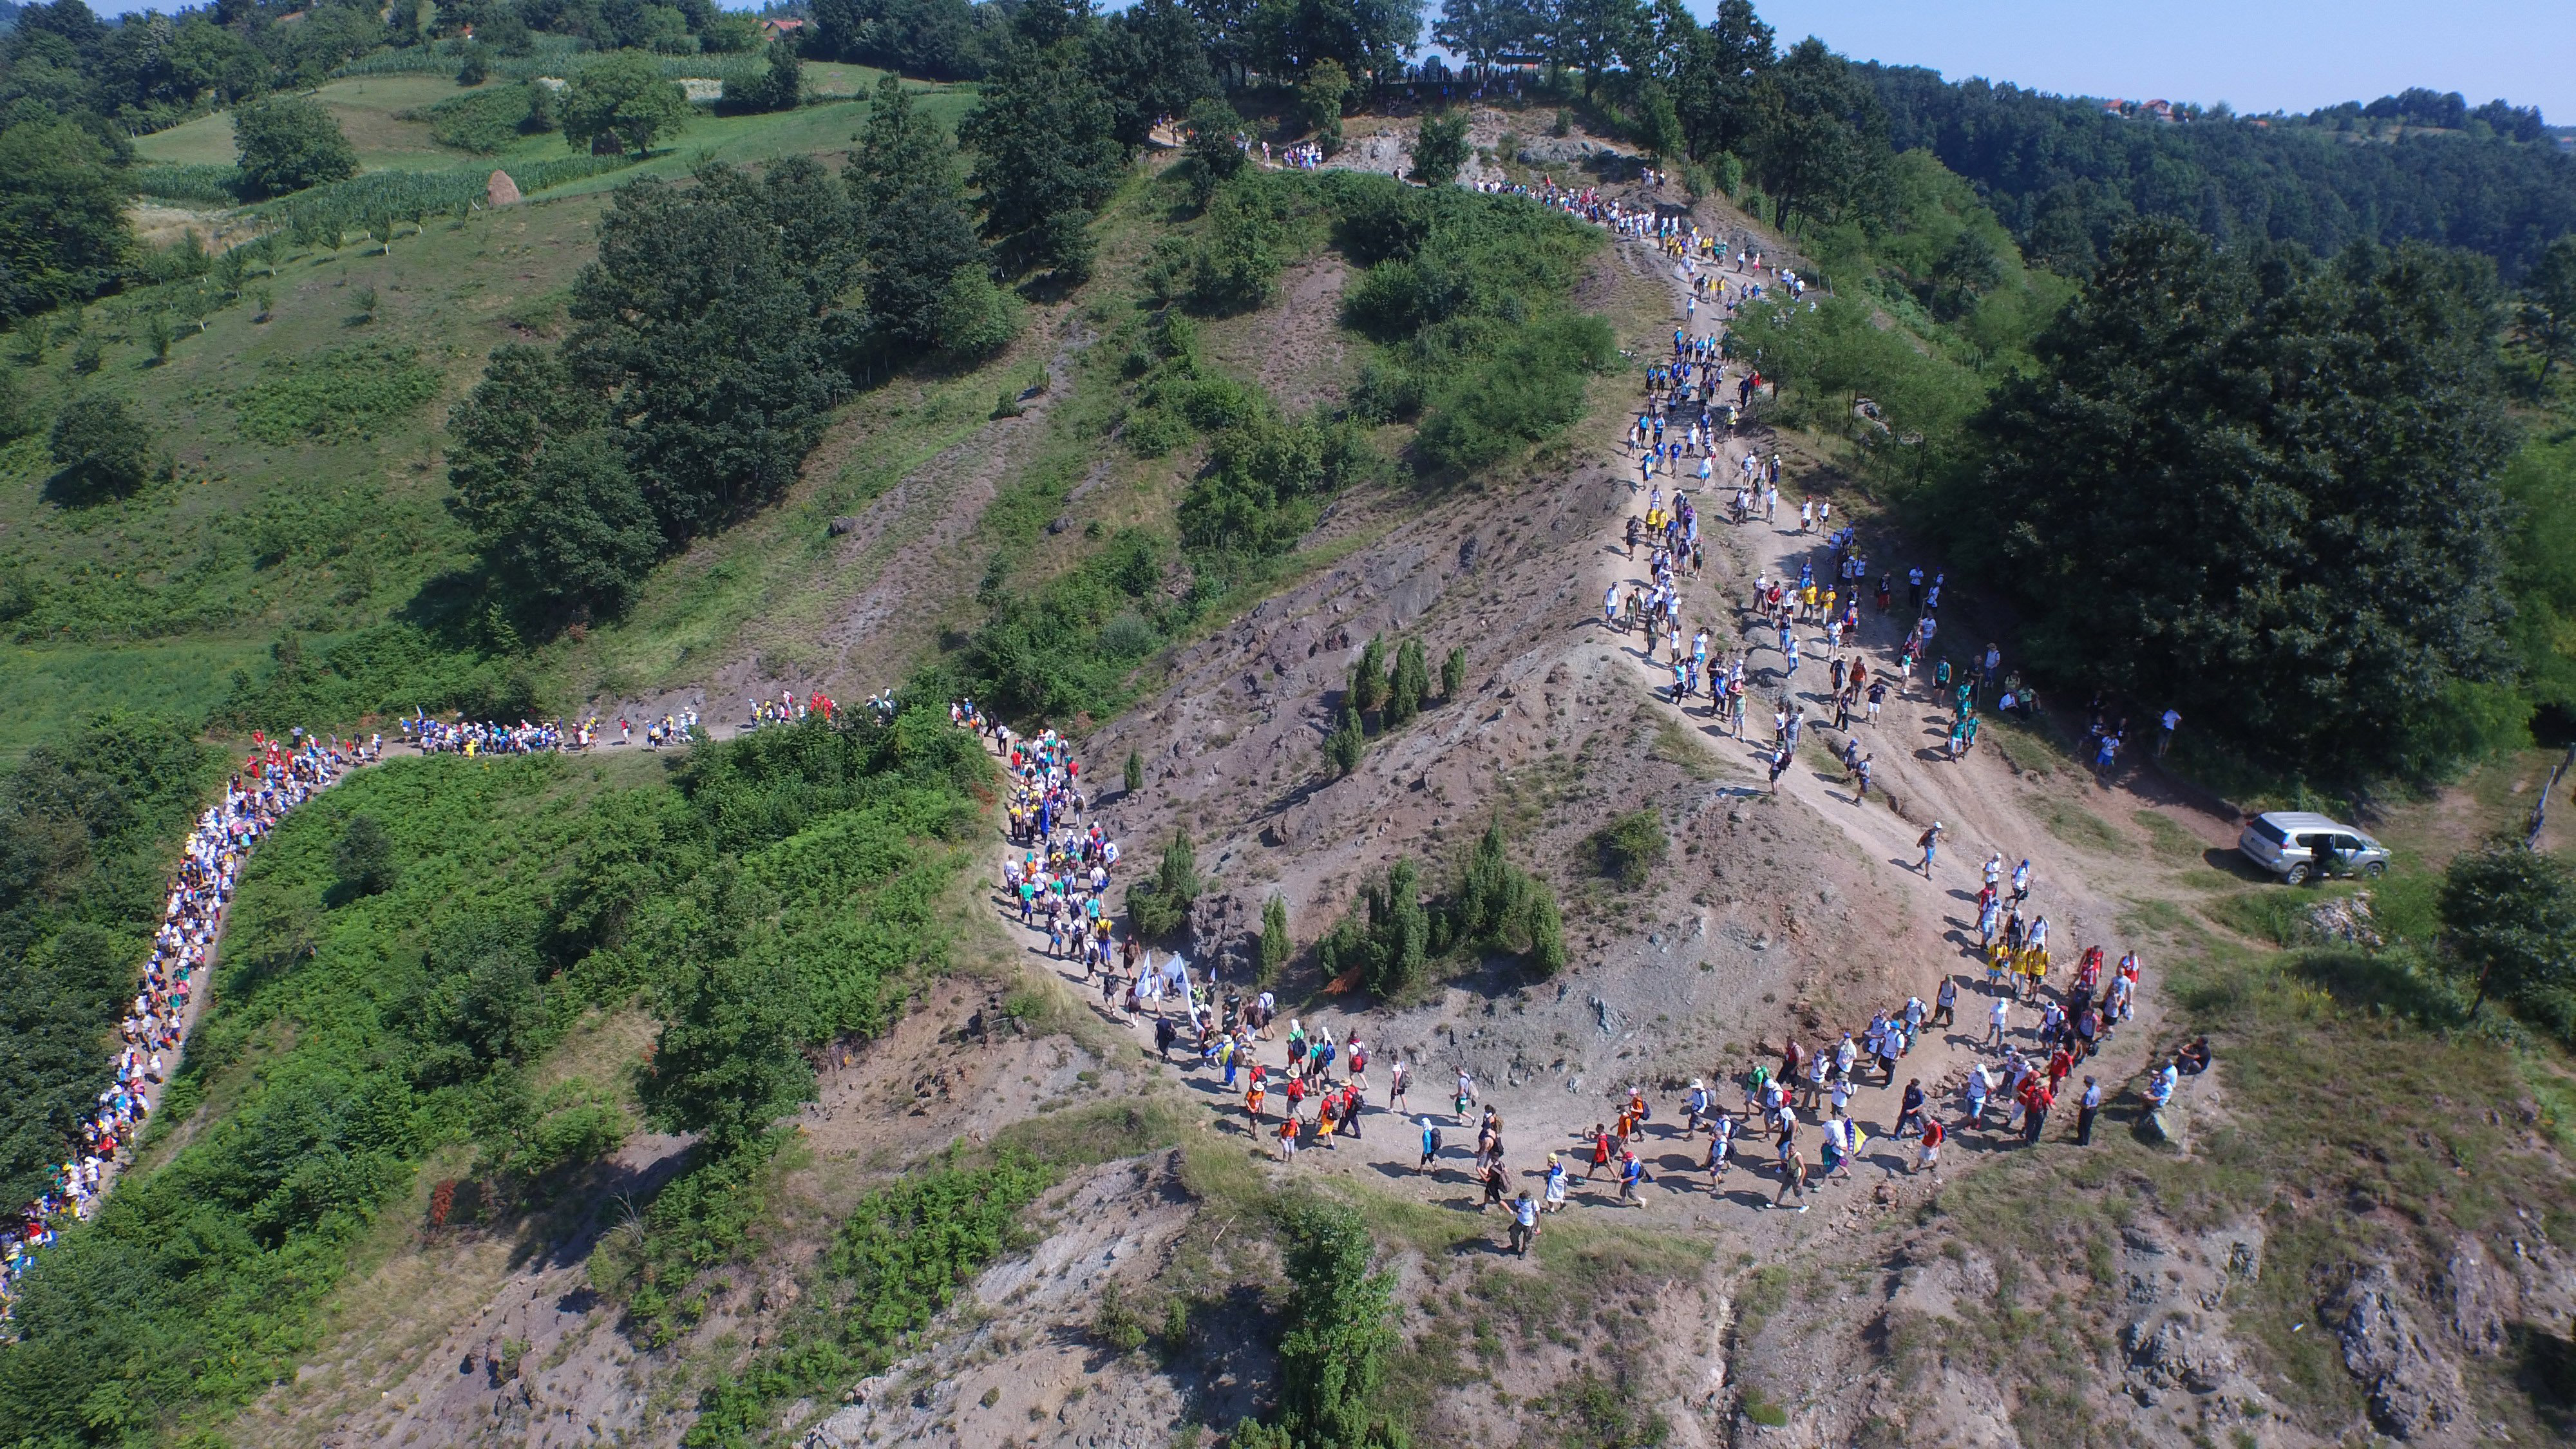 Participants in the  March of Peace  march through mountainous countryside near the village of Nezuk, 90 miles north east of Sarajevo, Bosnia on July 8, 2015.